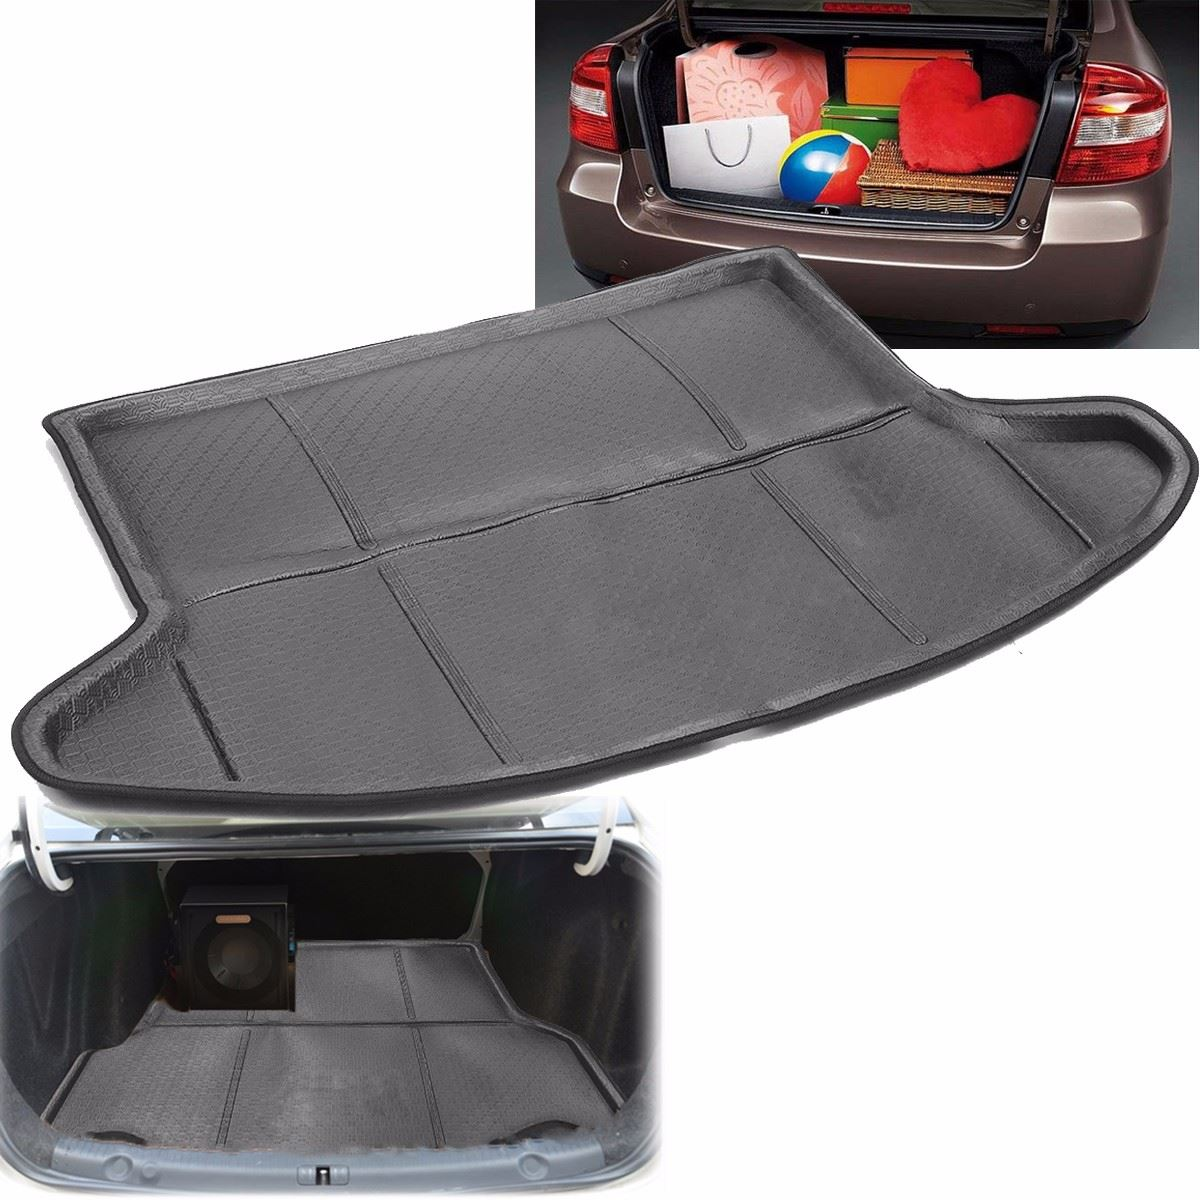 auto tailcase mat mantle rear trunk cargo mat for mazda cx 5 2013 2014 2015 2017 black in floor. Black Bedroom Furniture Sets. Home Design Ideas